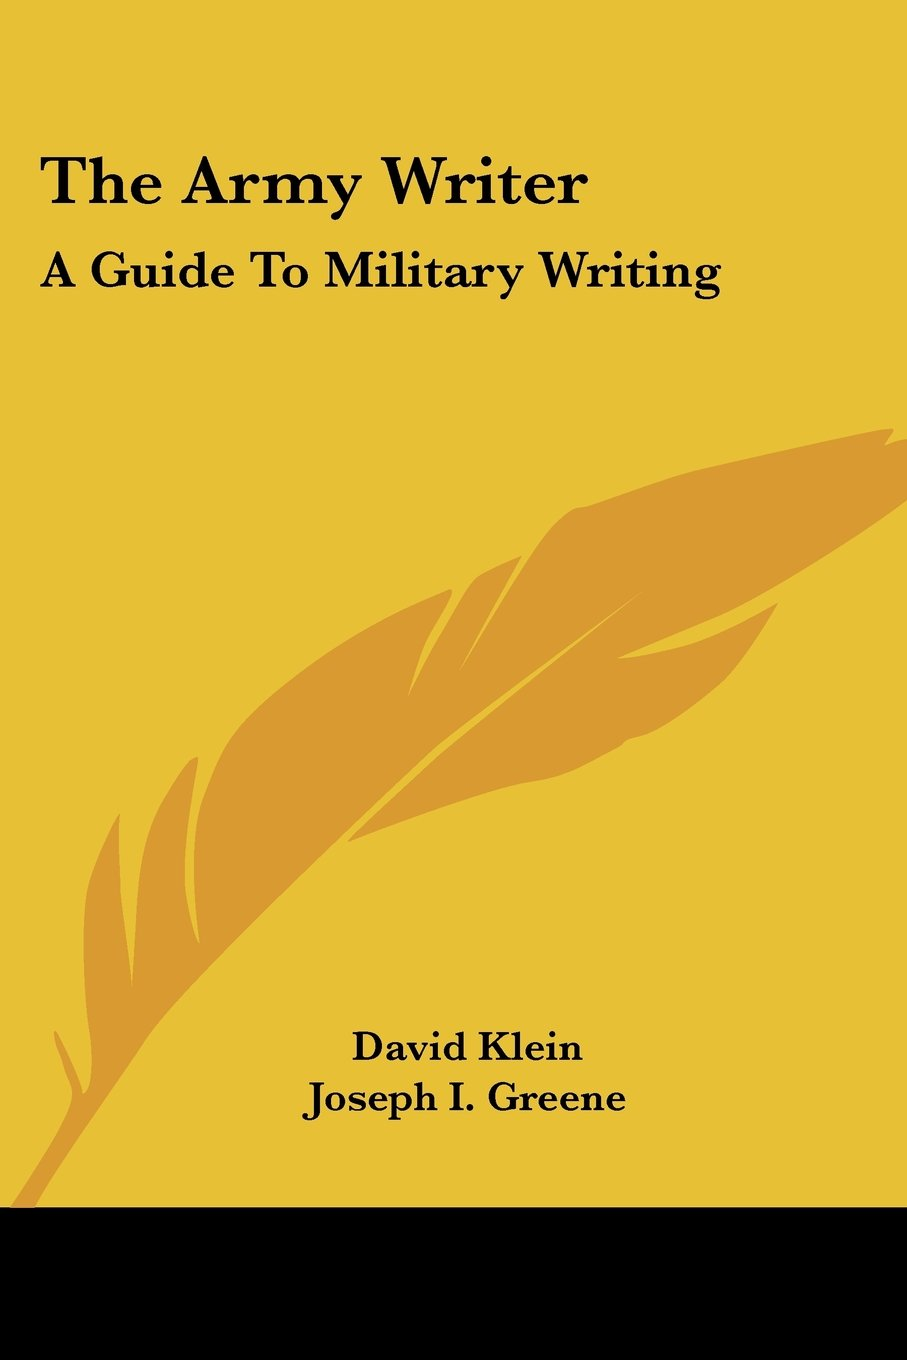 army writing guide Hints and helpful guidance for the army writer (extracted from tsp 158-f-0010, write in the army style) the army is effective only if information and directions are clearly communicated in carrying out your military duties, you will.